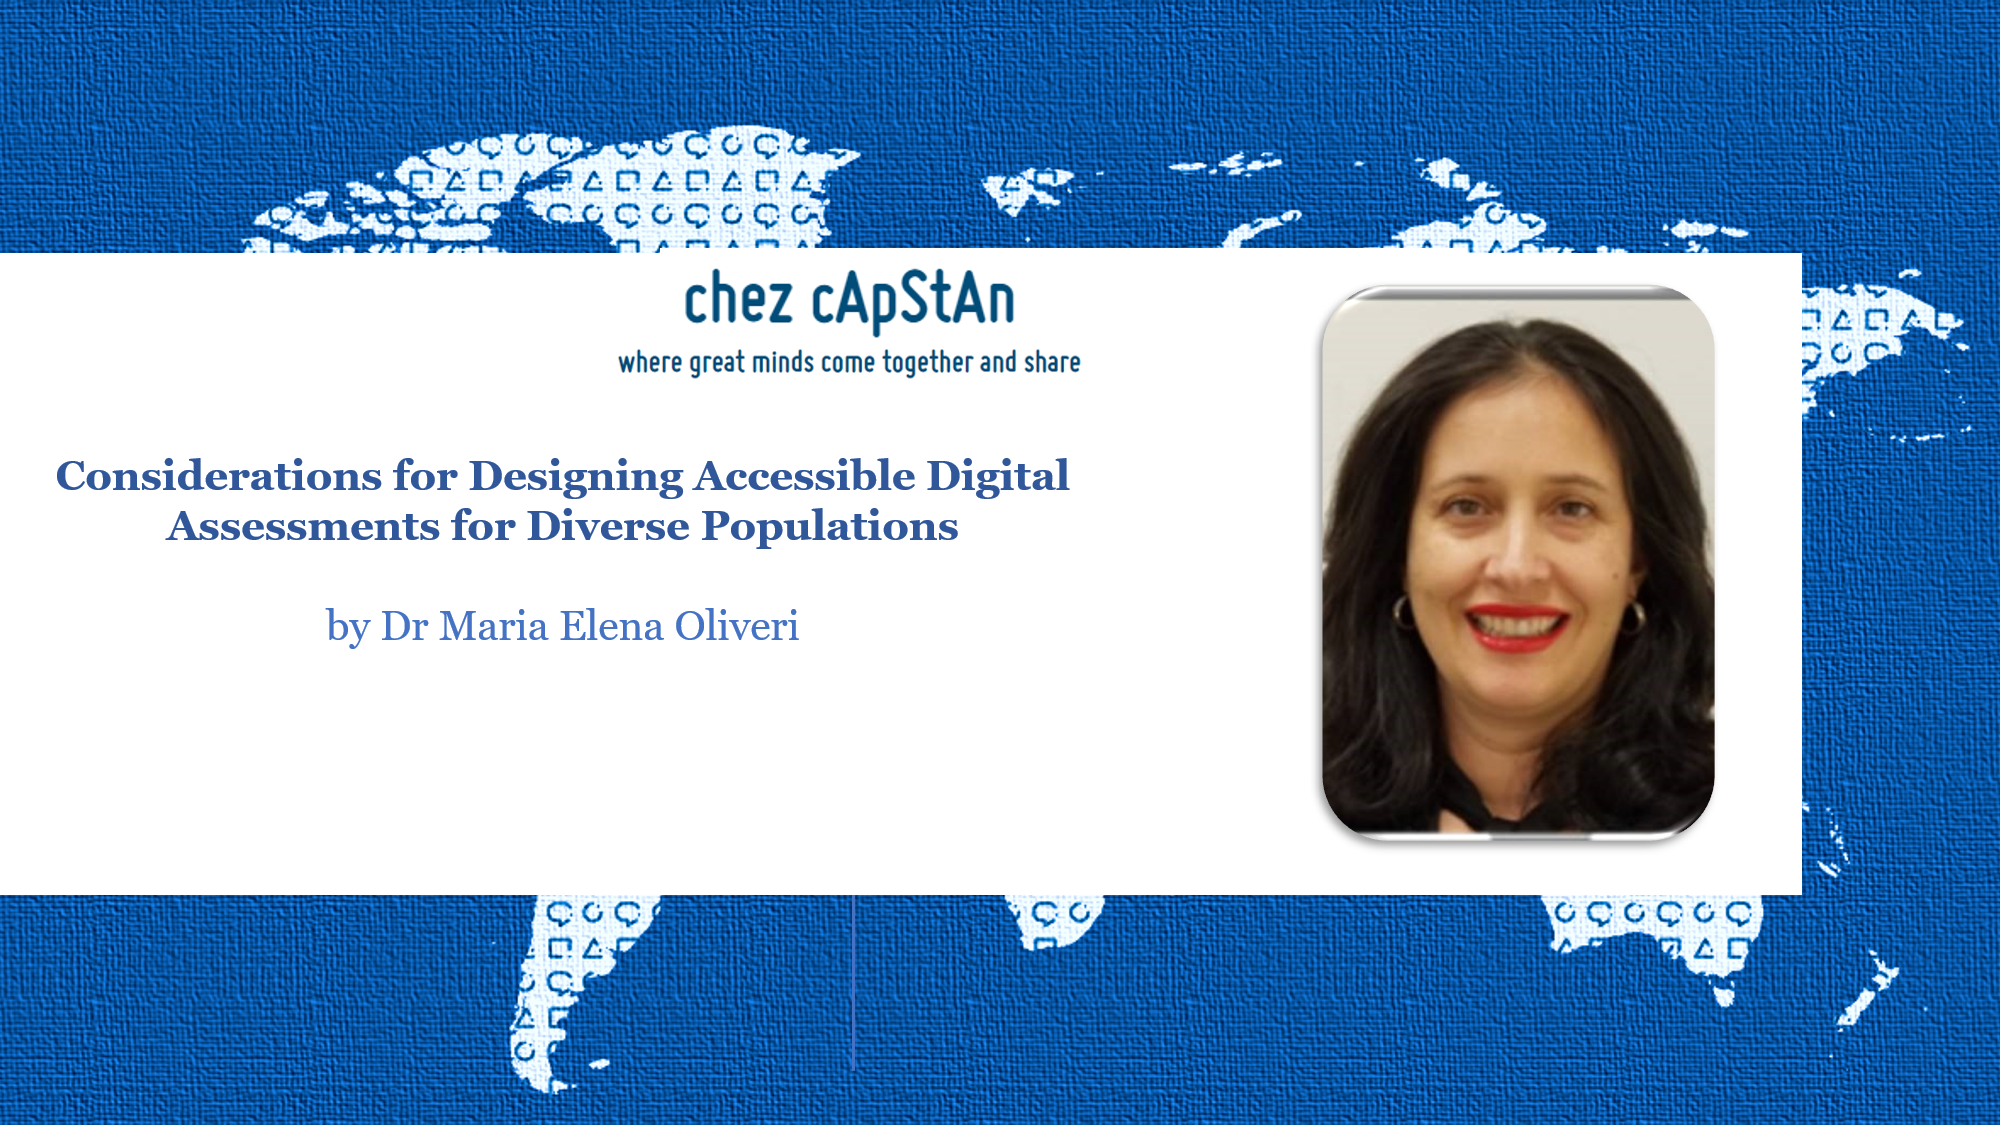 Considerations for Designing Accessible Digital Assessments for Diverse Populations